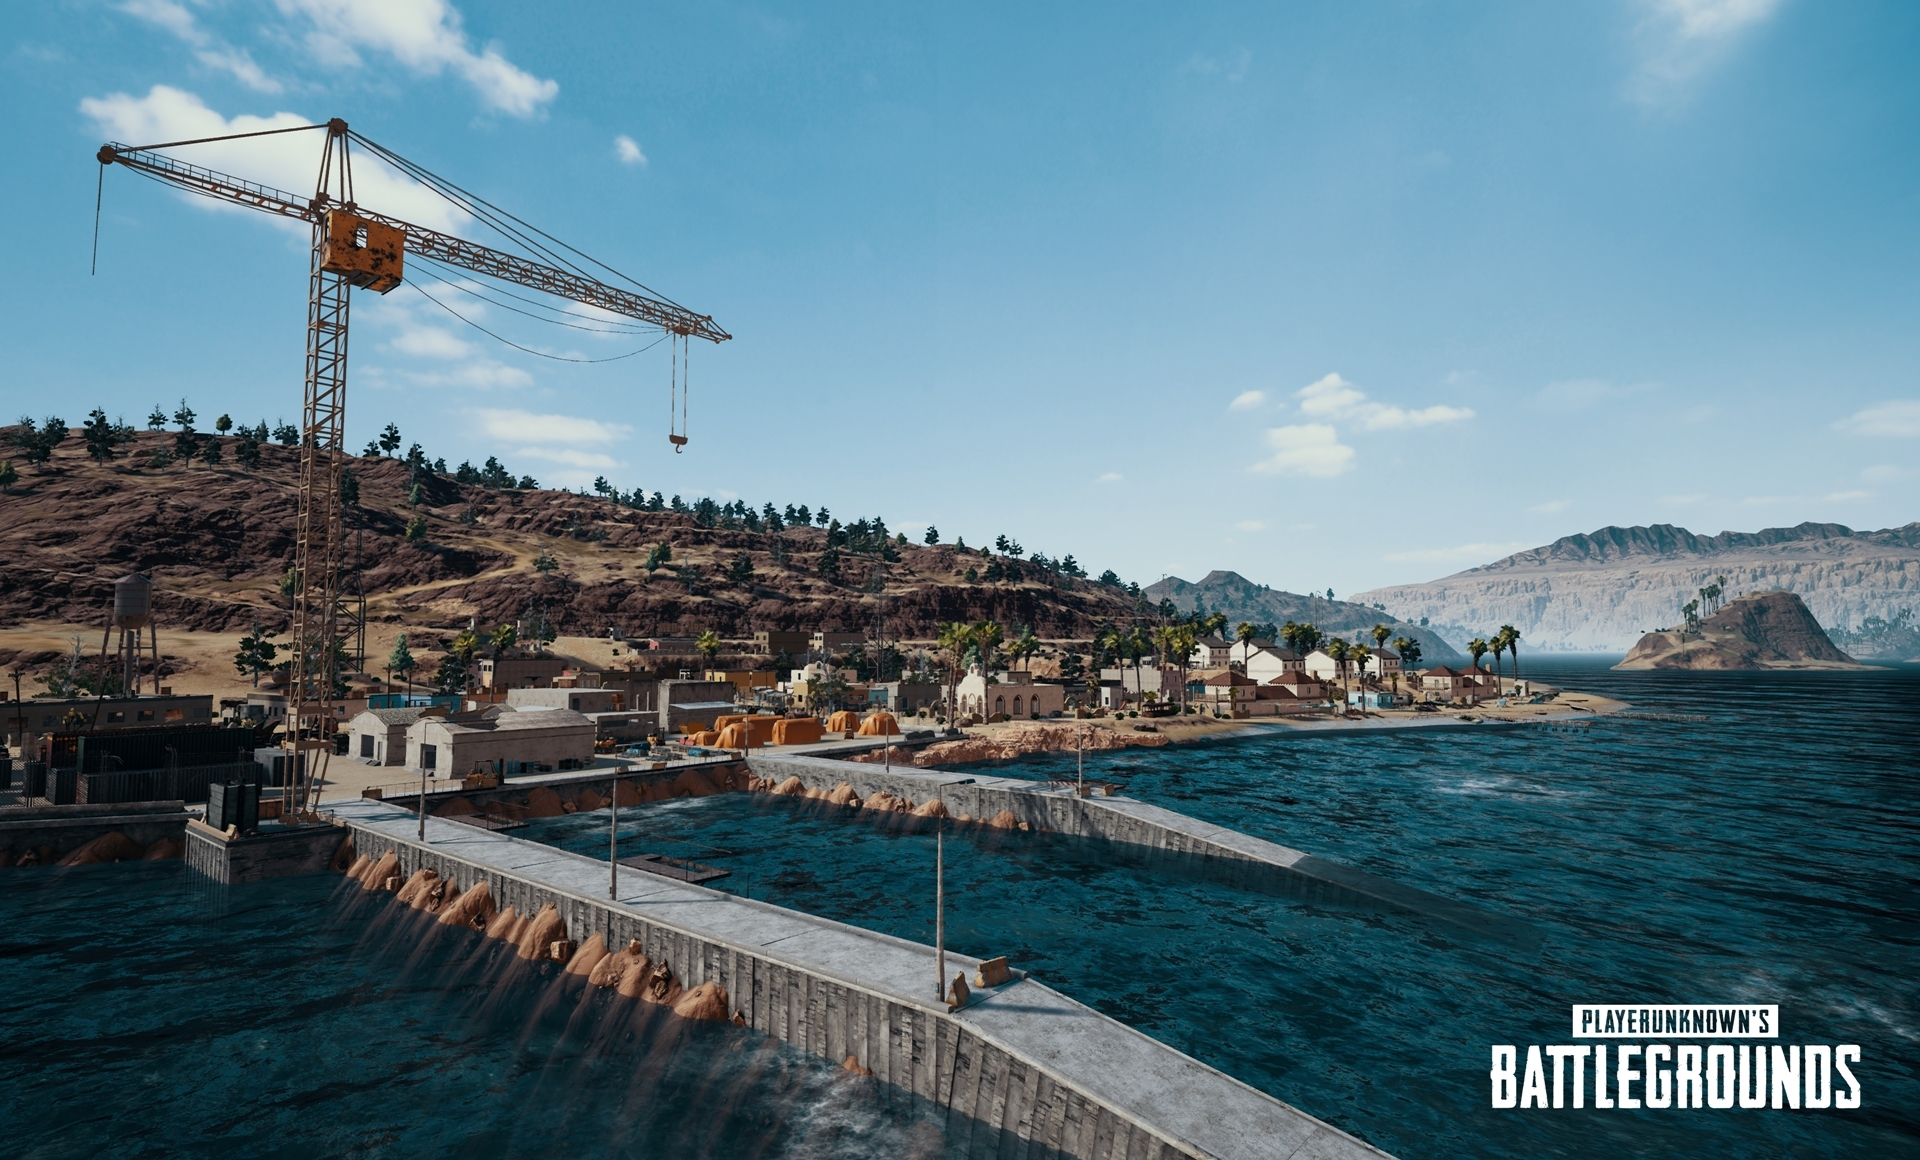 New PUBG Miramar Desert Map Revealed Including Screenshots  Key     New PUBG Miramar Desert Map Revealed Including Screenshots  Key Landmarks  and Towns